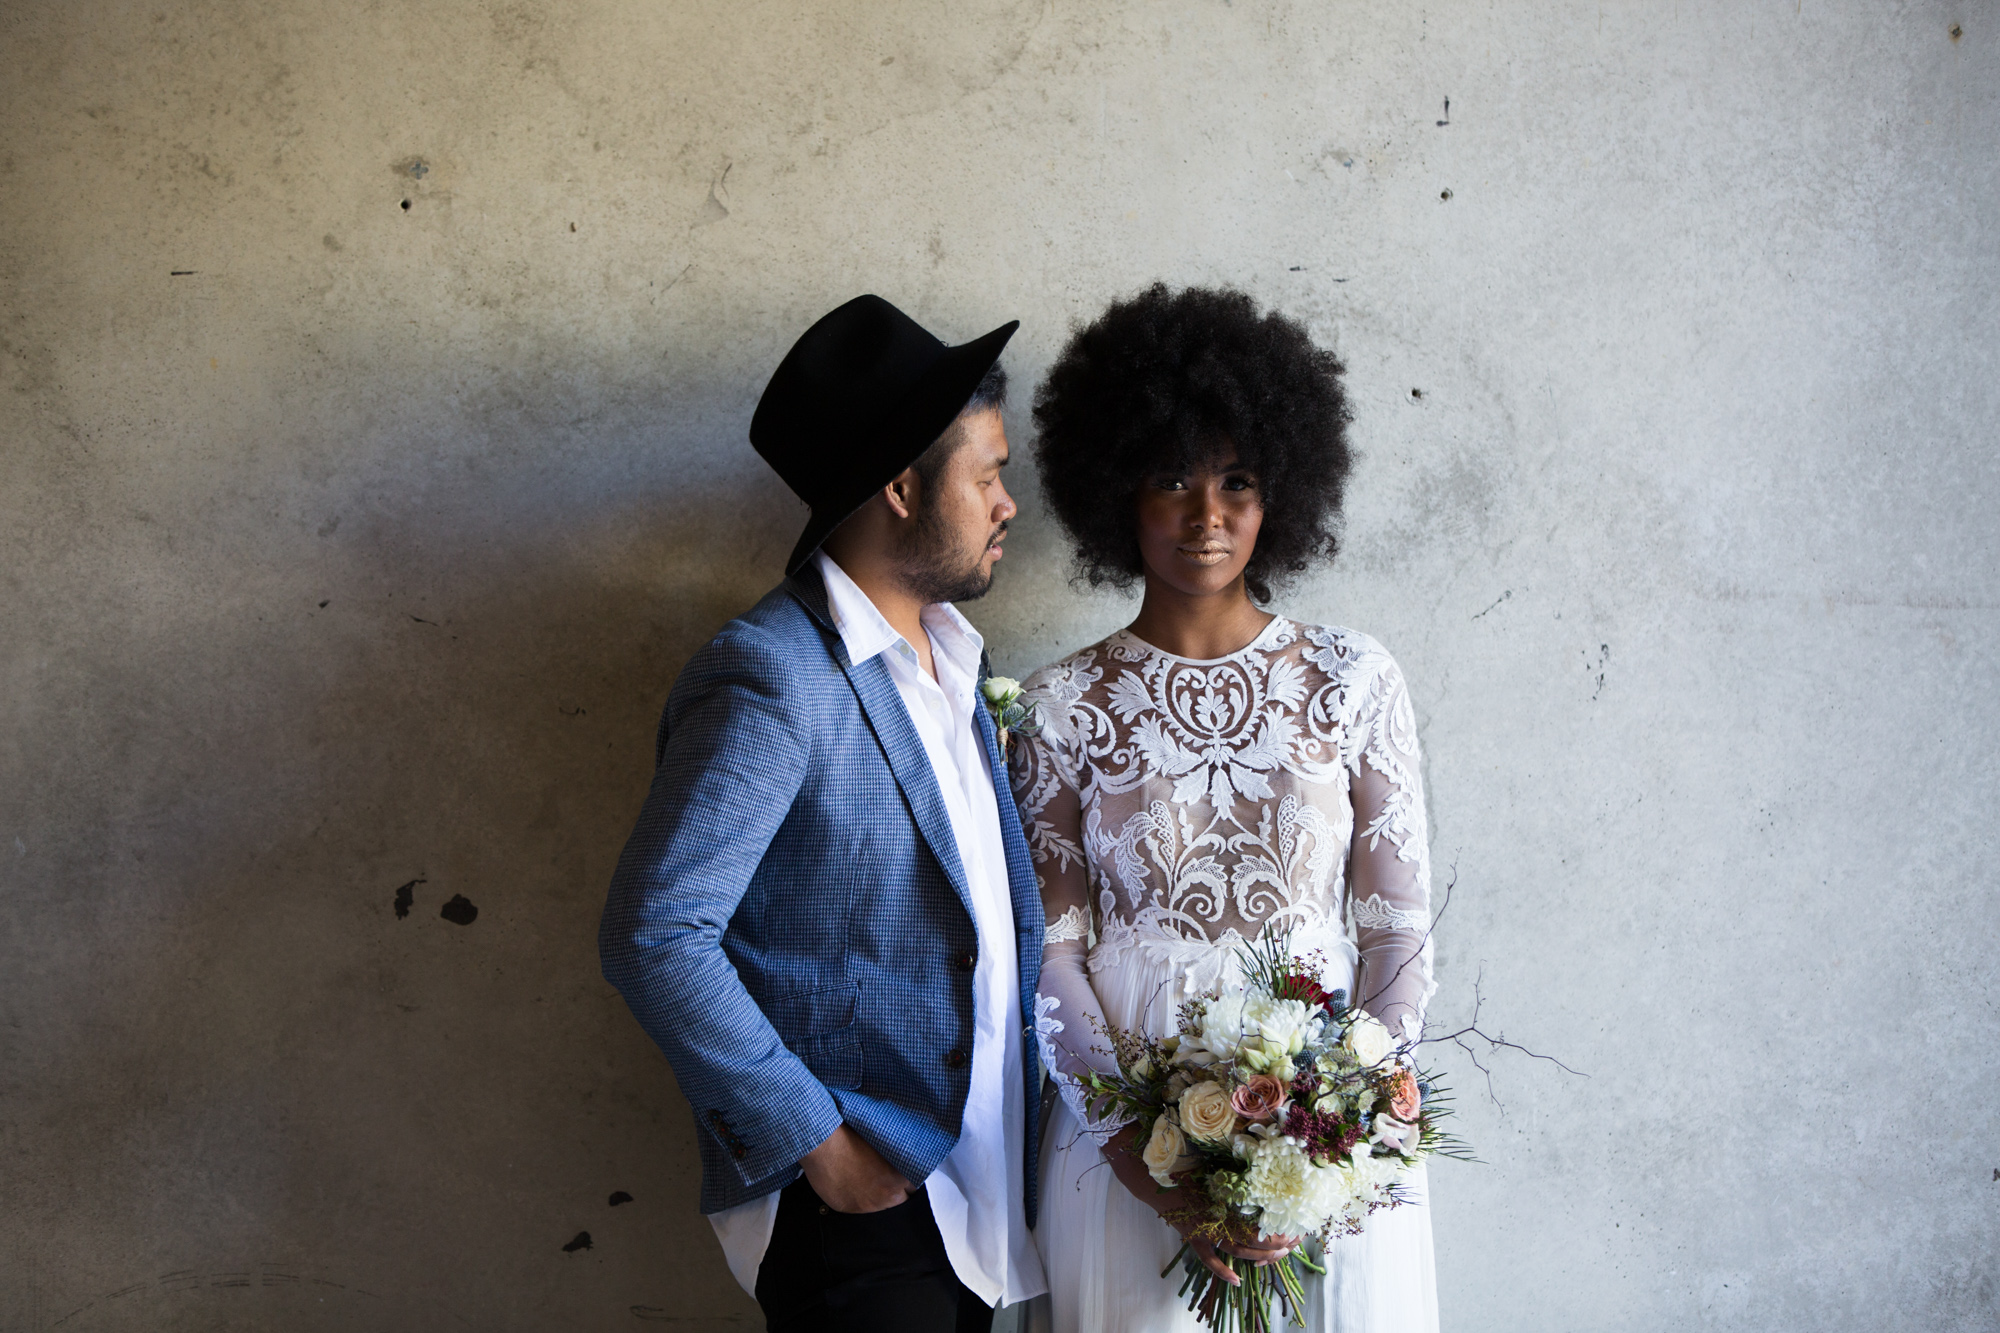 Alternative bride and groom standing against brick wall. African bride with afro wearing lace wedding dress, groom wearing blue jacket and hat